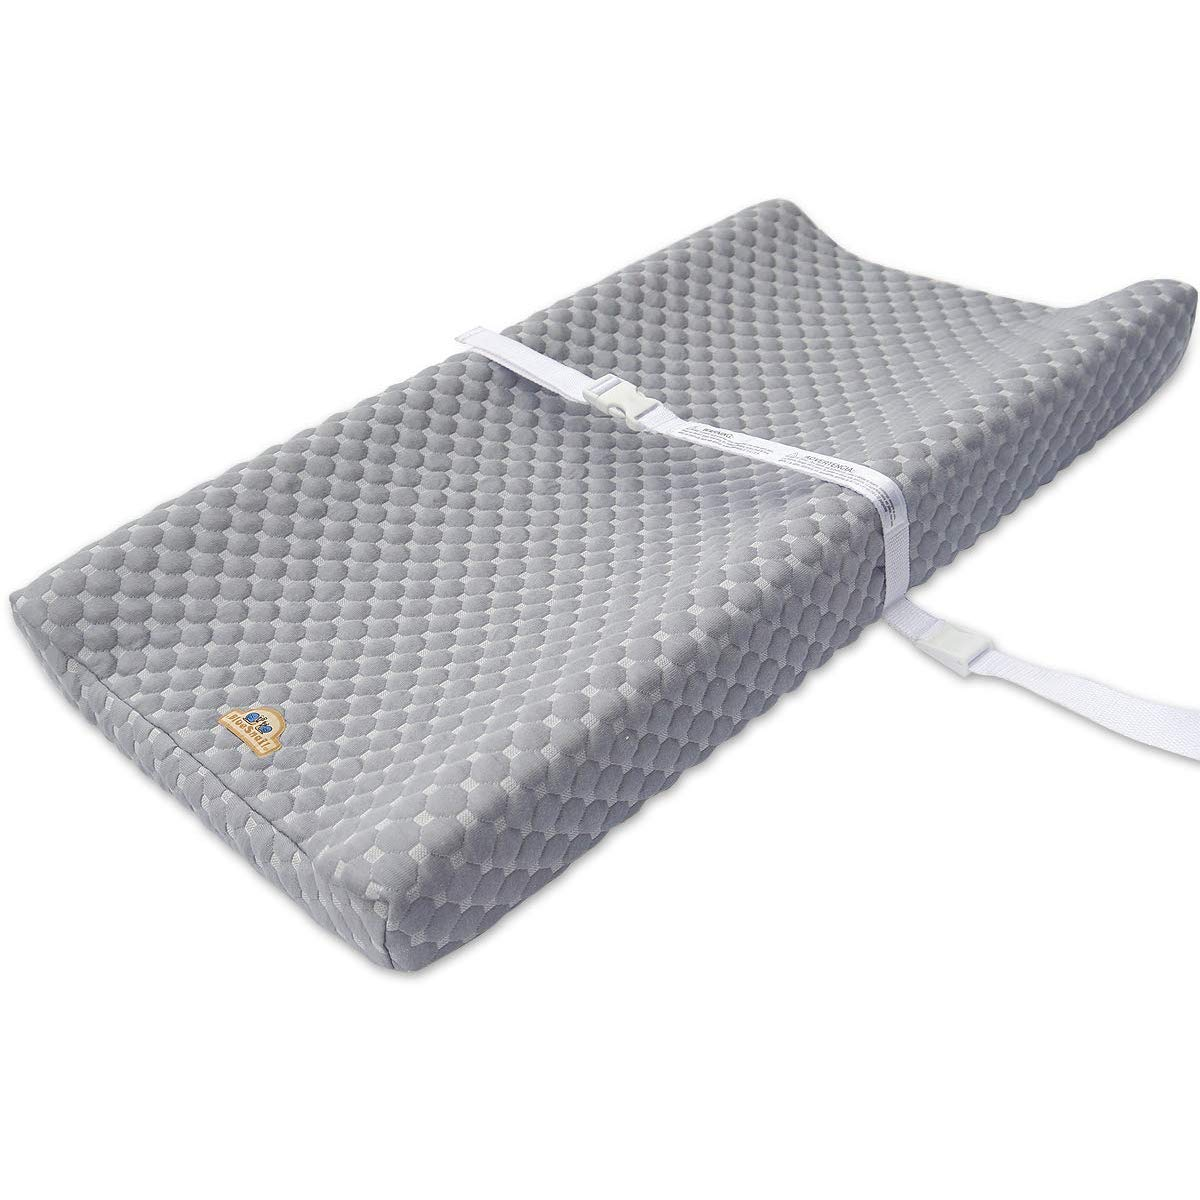 Super Soft and Comfy Bamboo Changing Pad Cover for Baby by BlueSnail